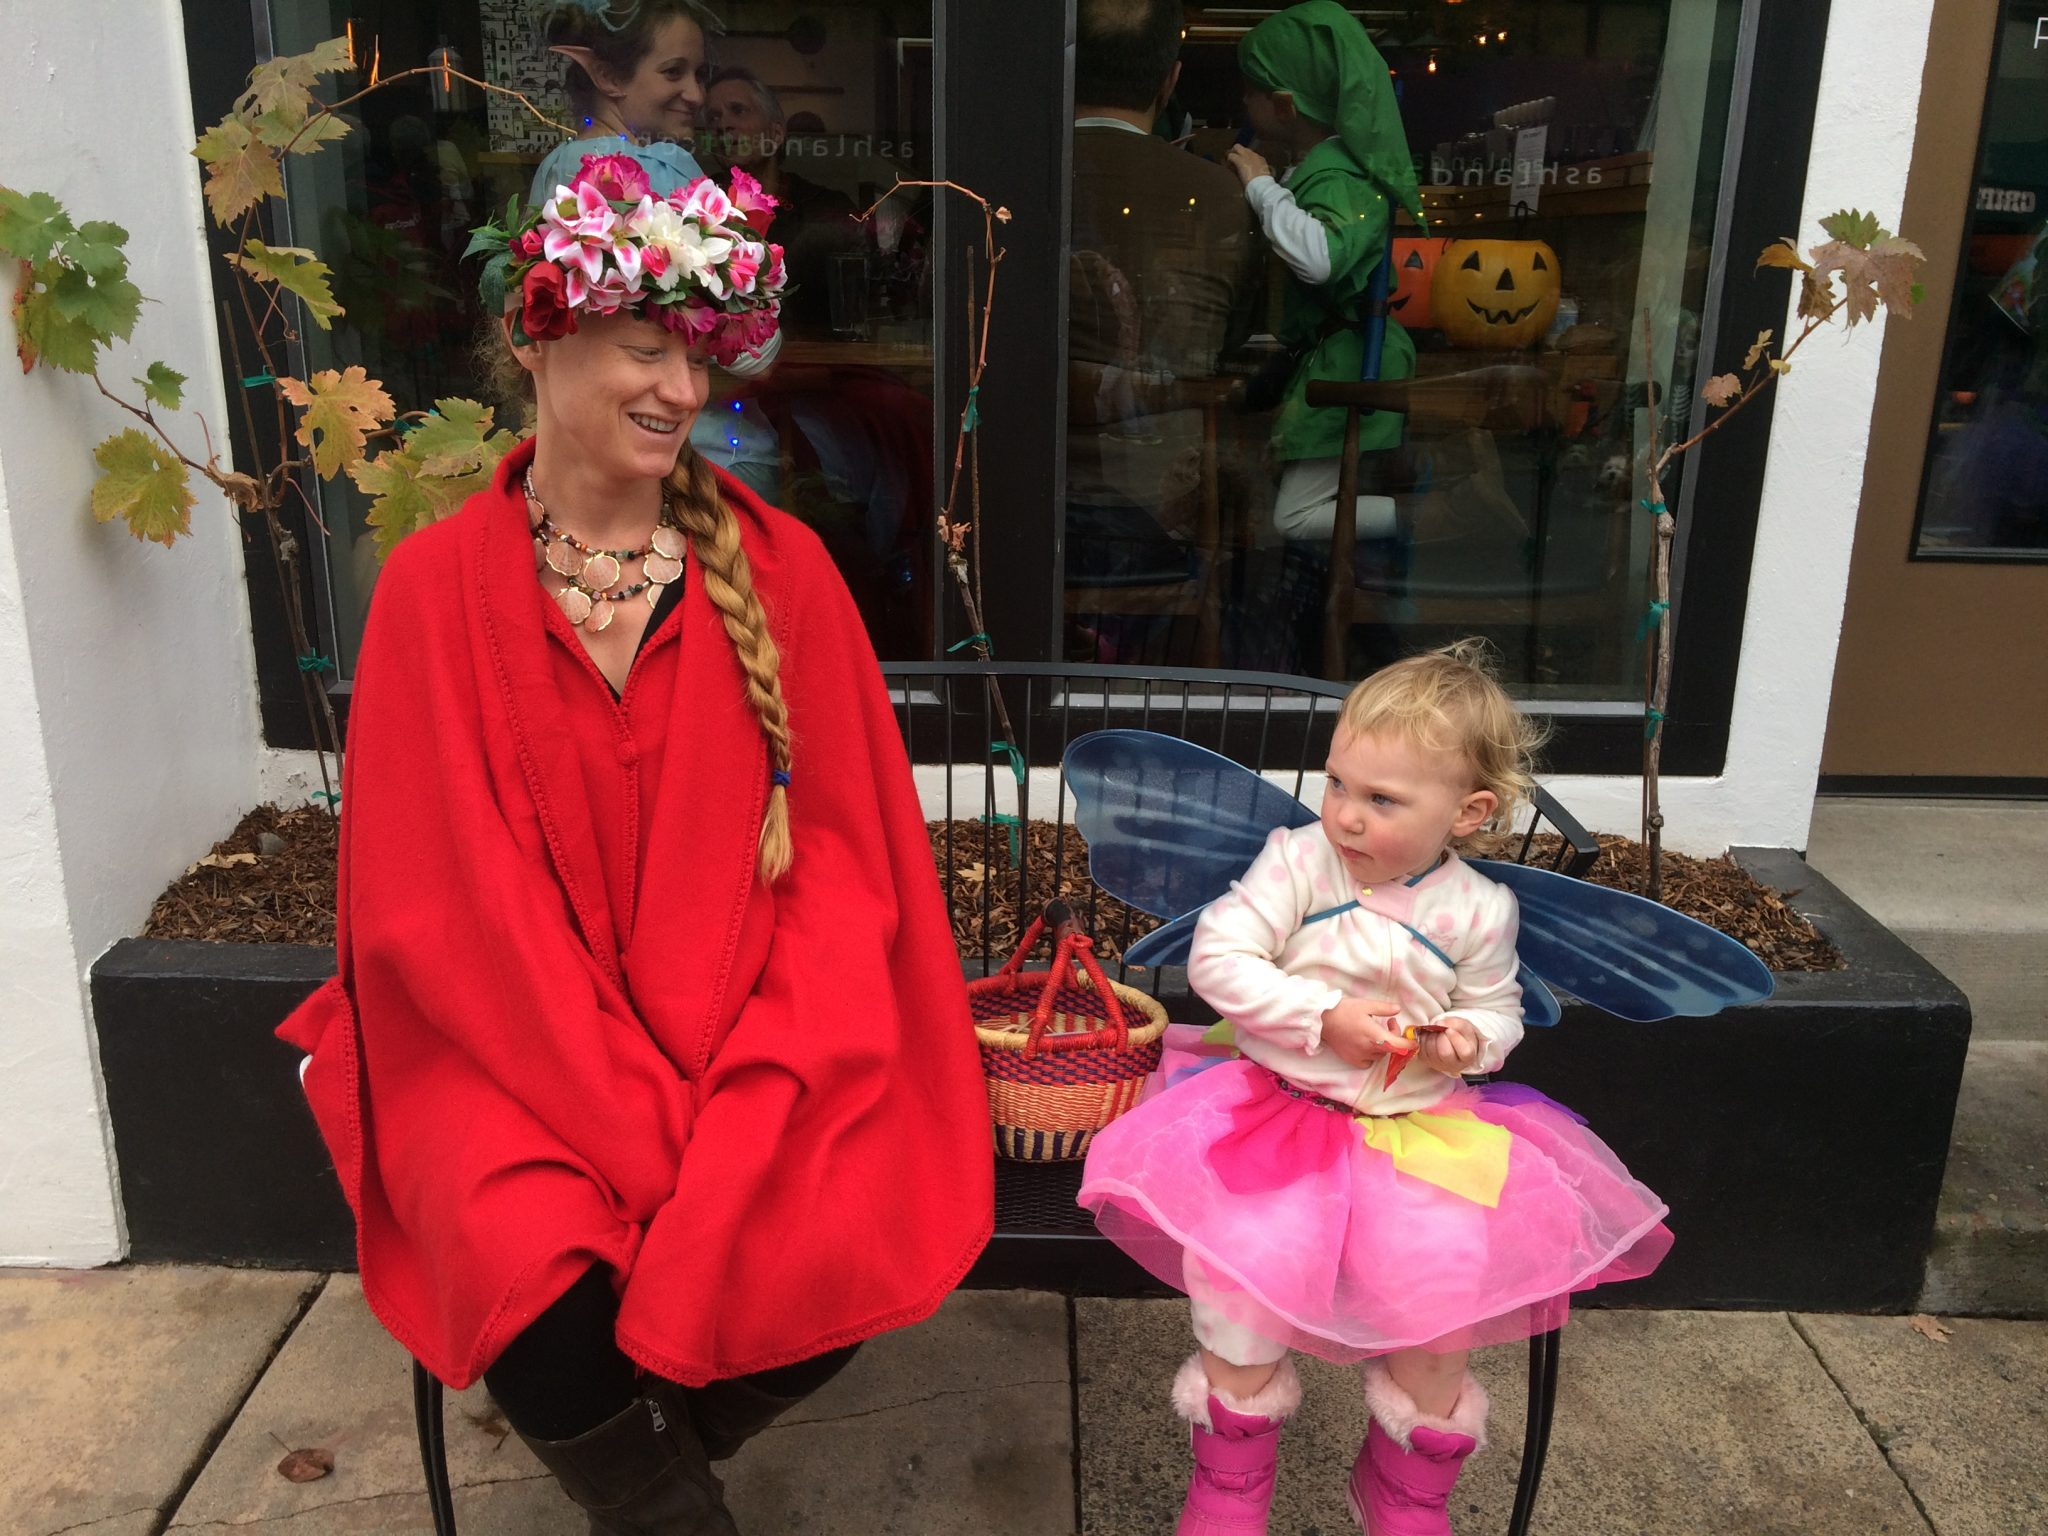 A butterfly and some flowers rest on a bench and eat Skittles outside Pie and Vine during the Halloween parade in Ashland, Oregon